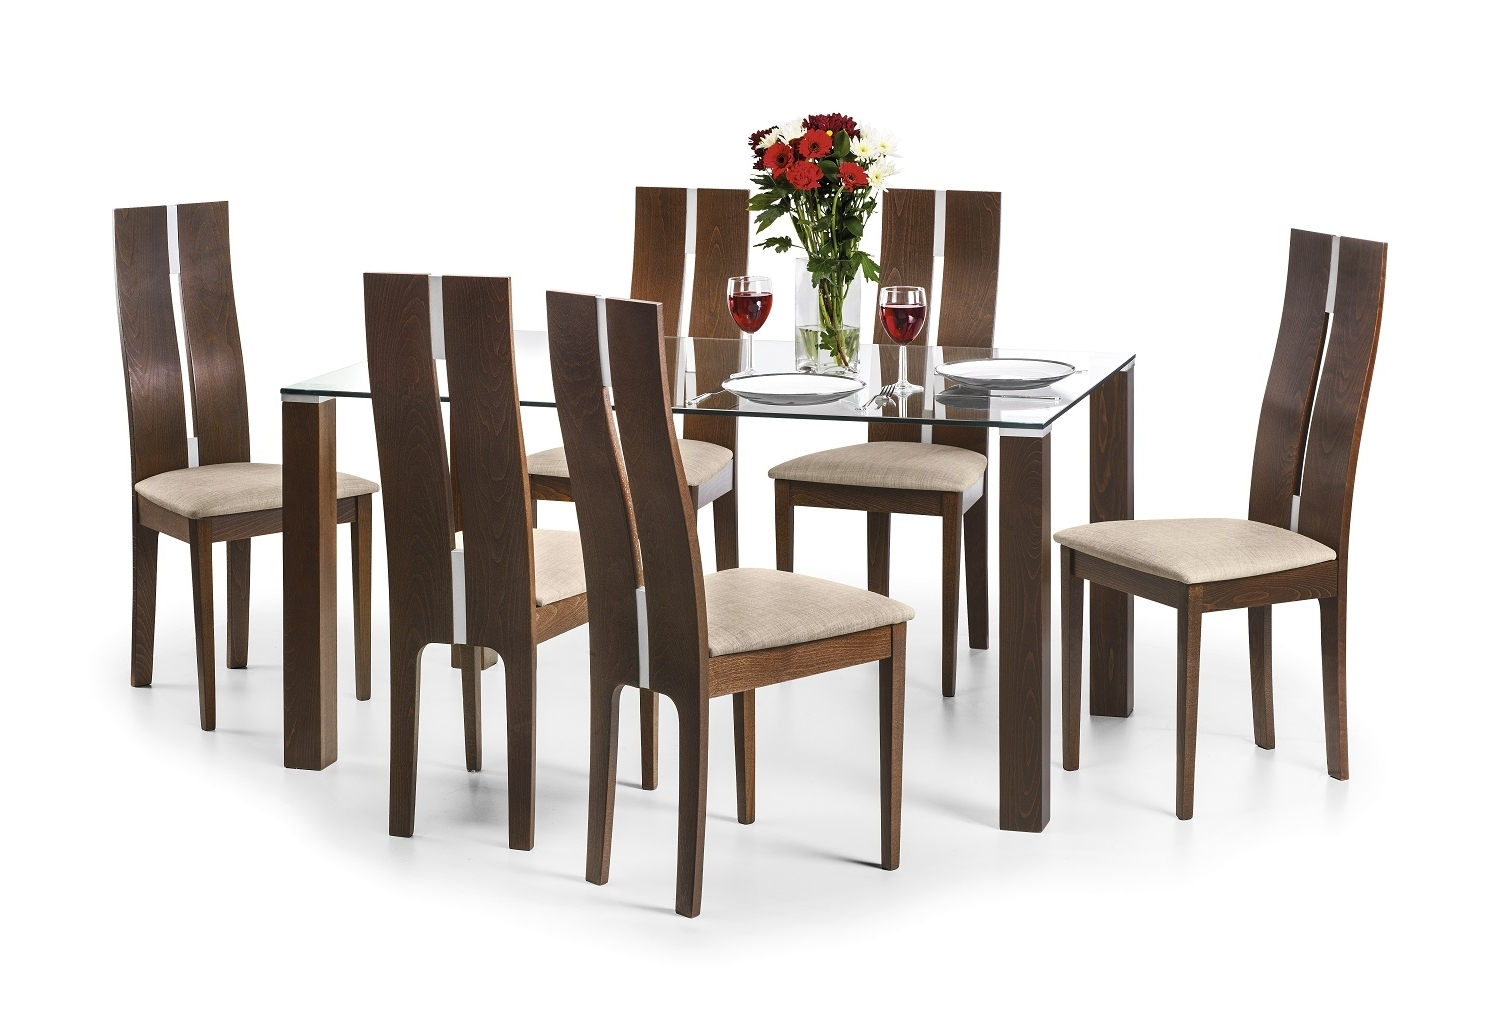 Kayman 150Cm Walnut And Glass Dining Table And Chairs Inside Most Current Glass And Oak Dining Tables And Chairs (View 23 of 25)